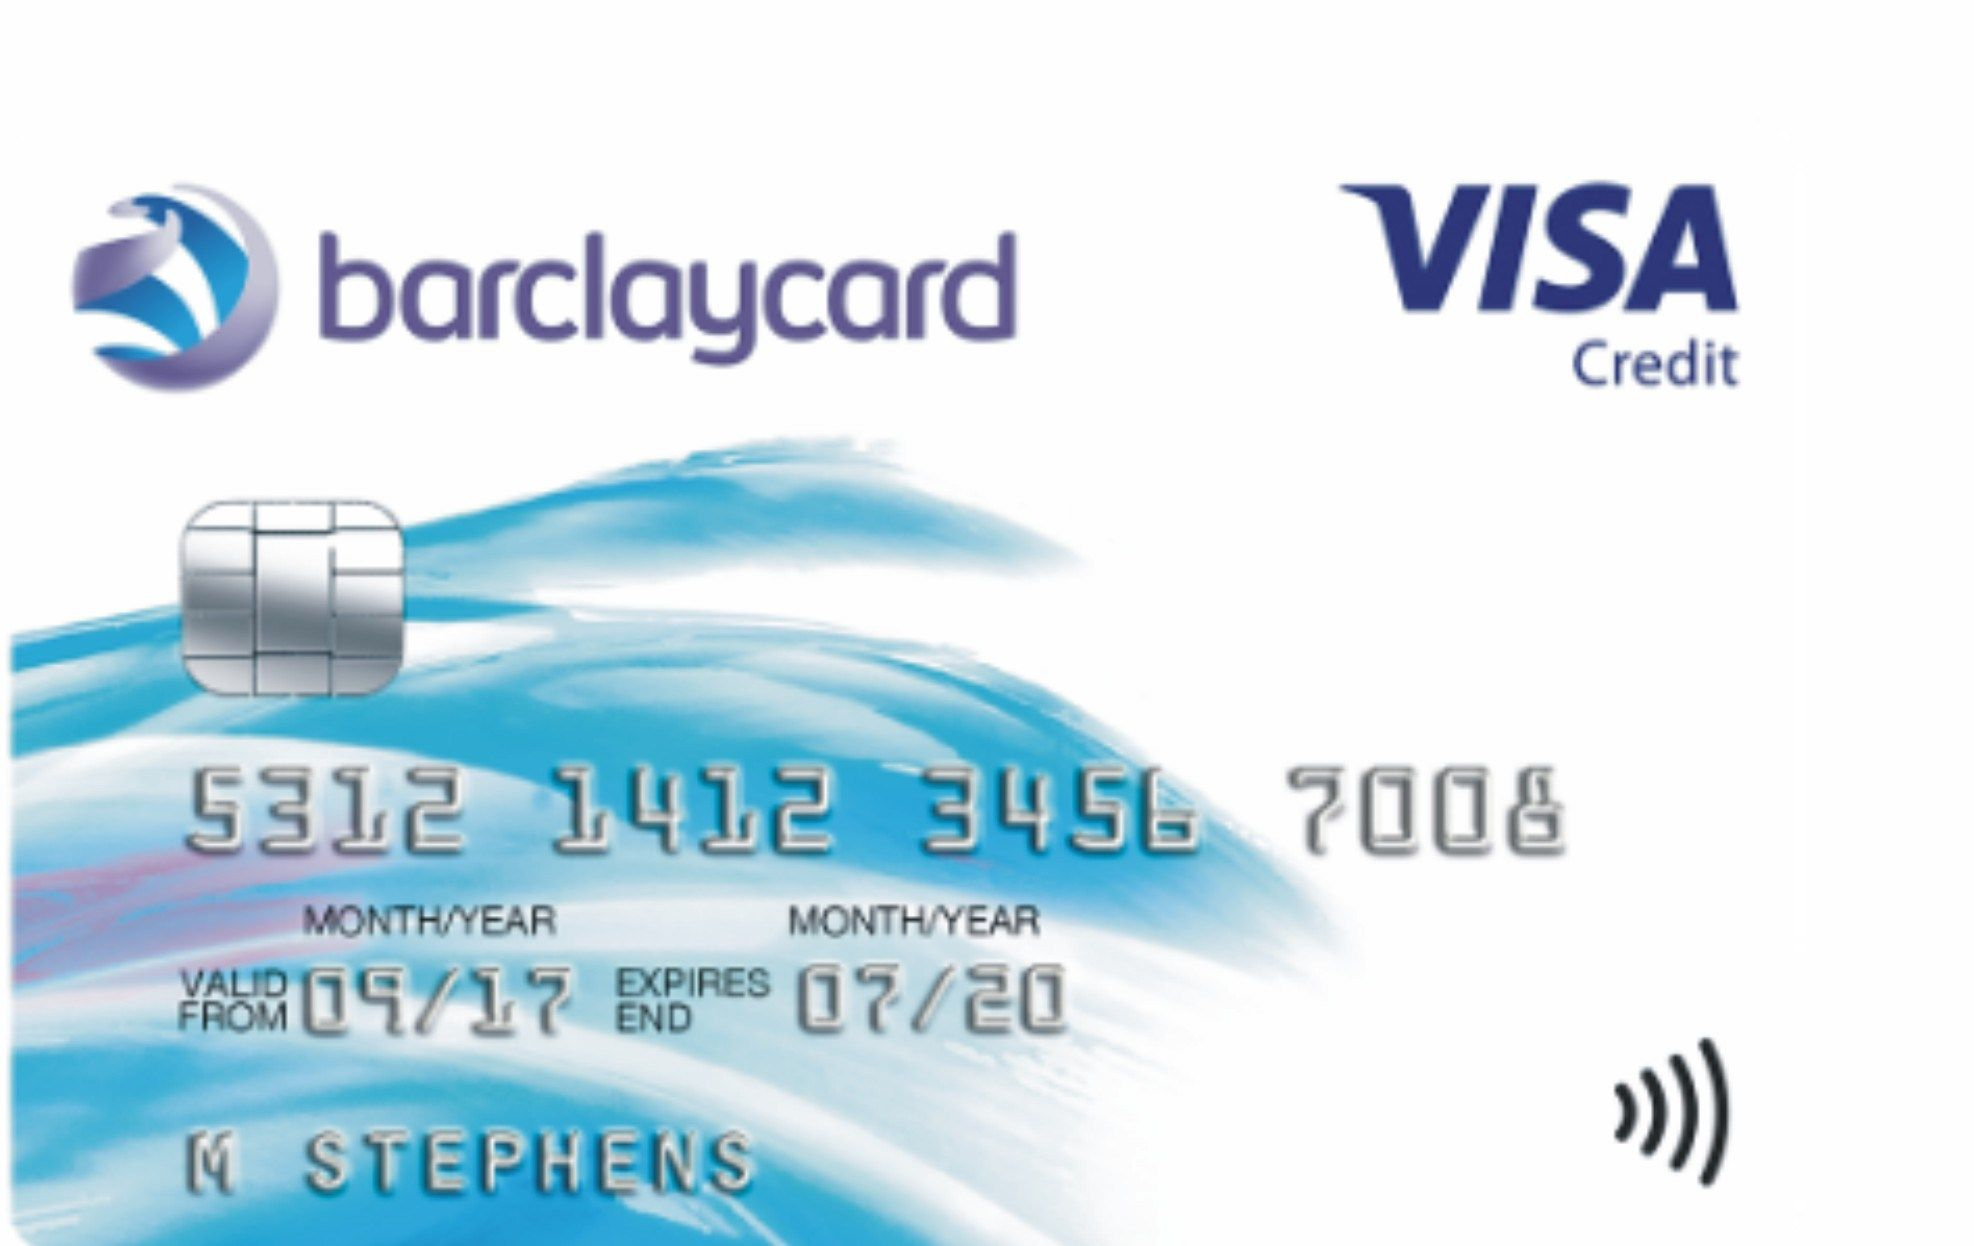 Barclaycard Initial Credit Card Review Benefits Credit Card Benefits Rewards Credit Cards Credit Card